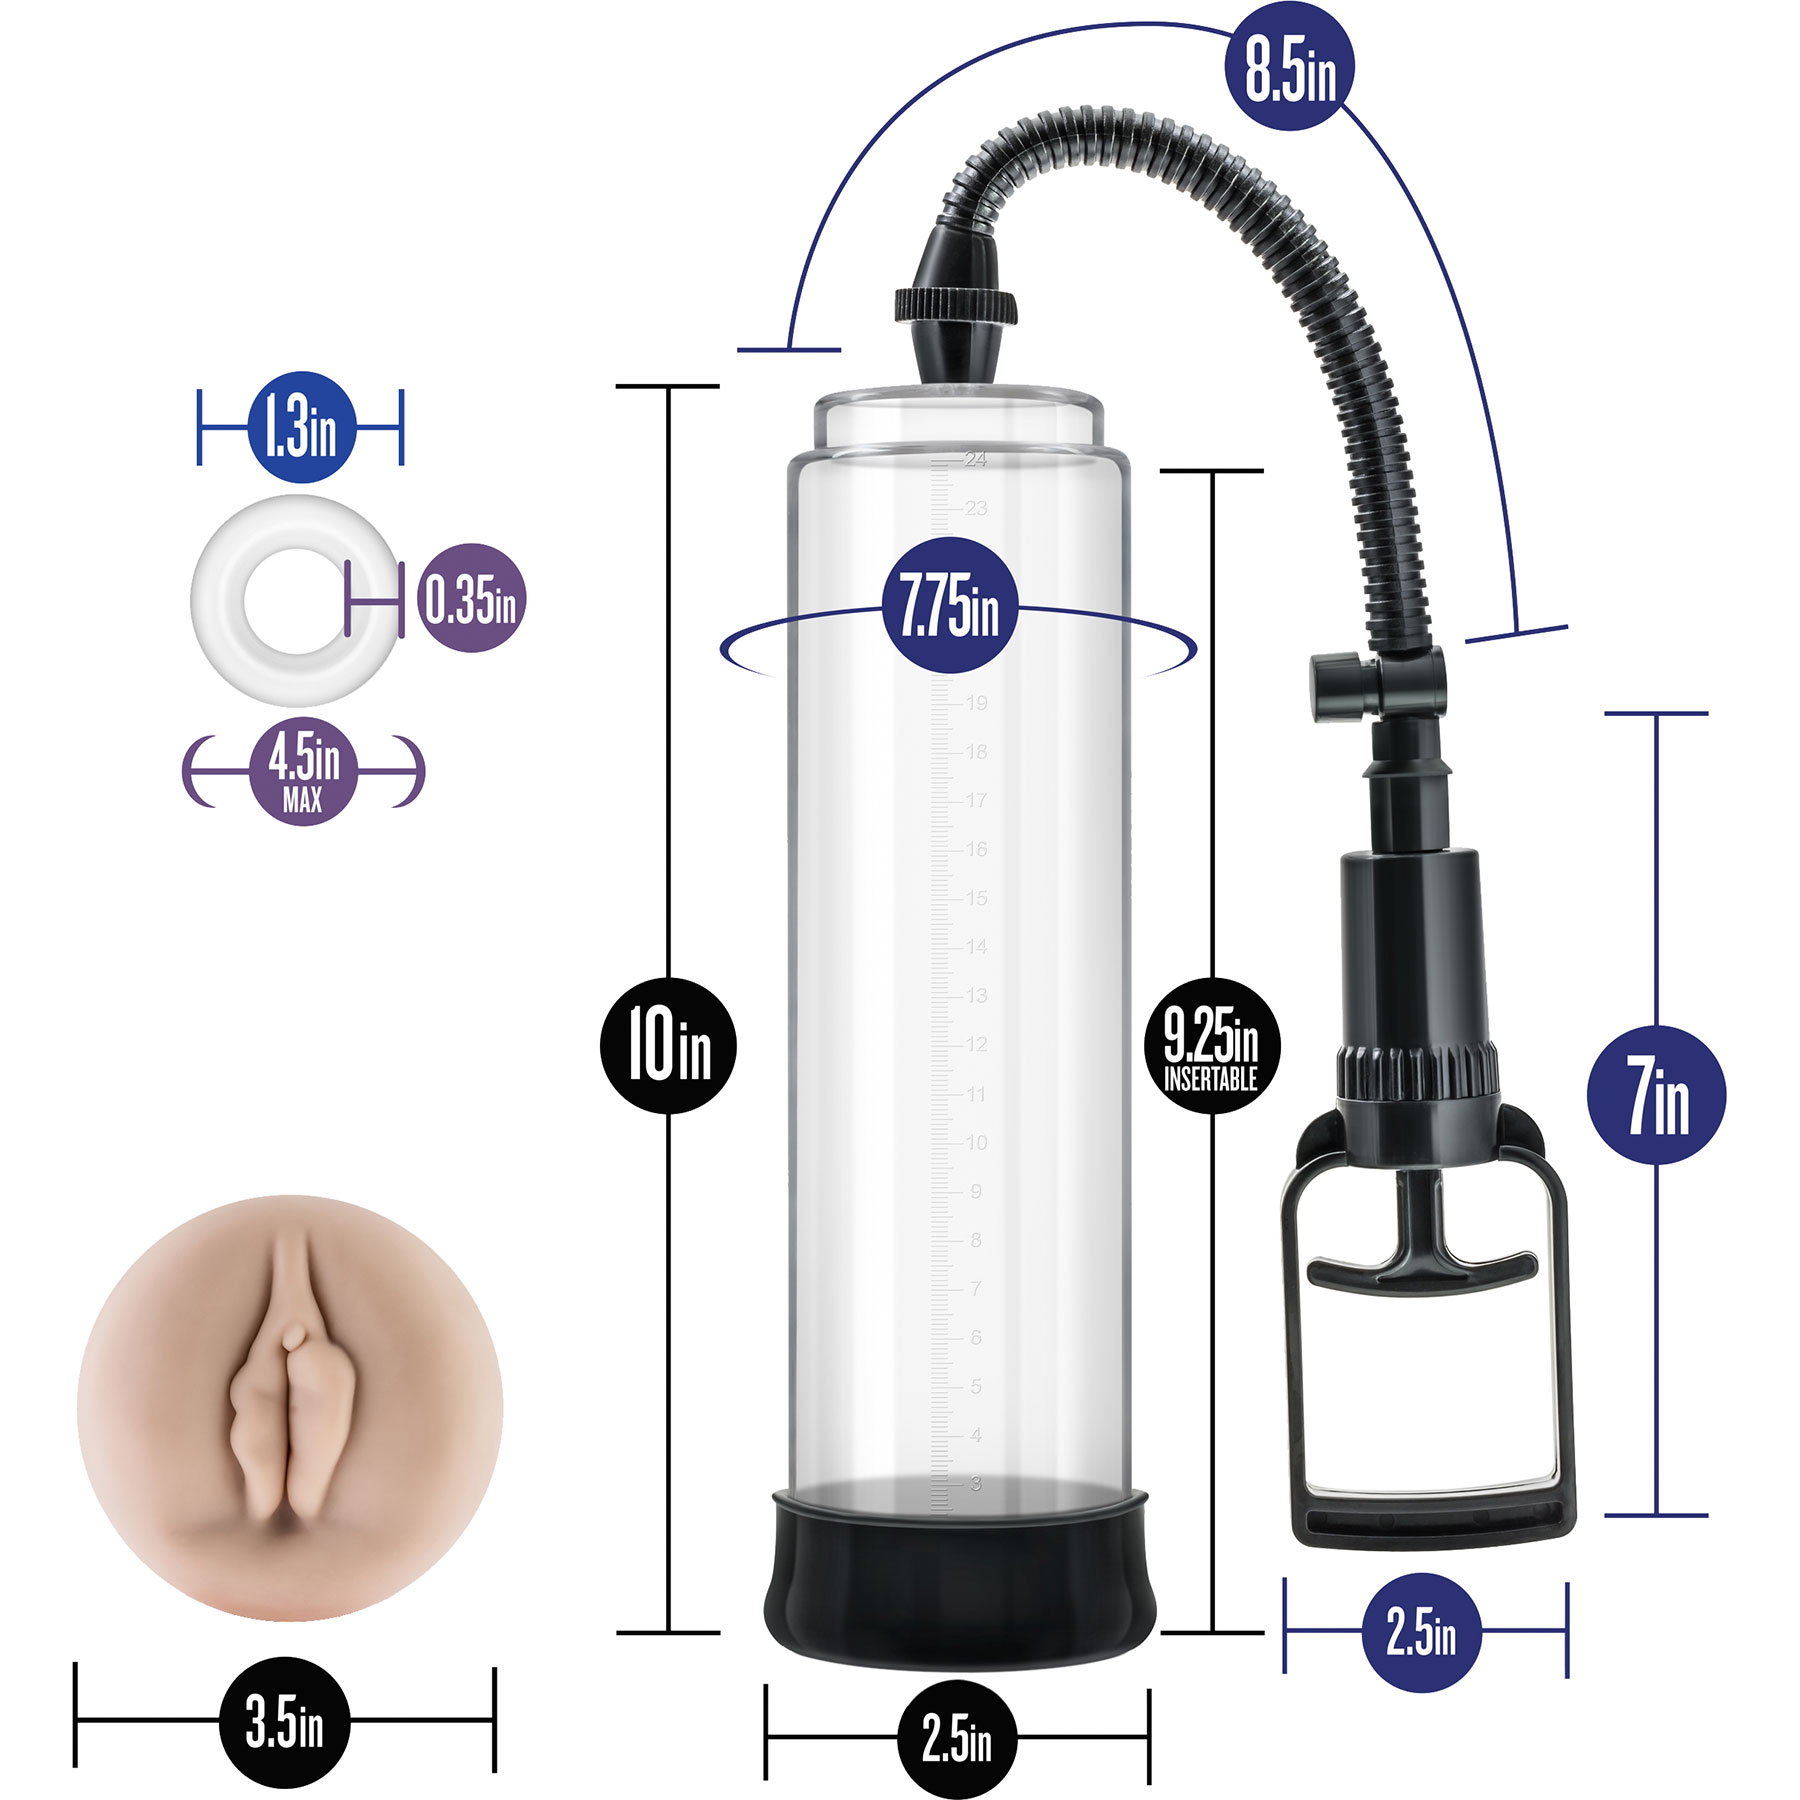 Performance VX5 Male Enhancement Penis Pump System With Realistic Sleeve - Measurements